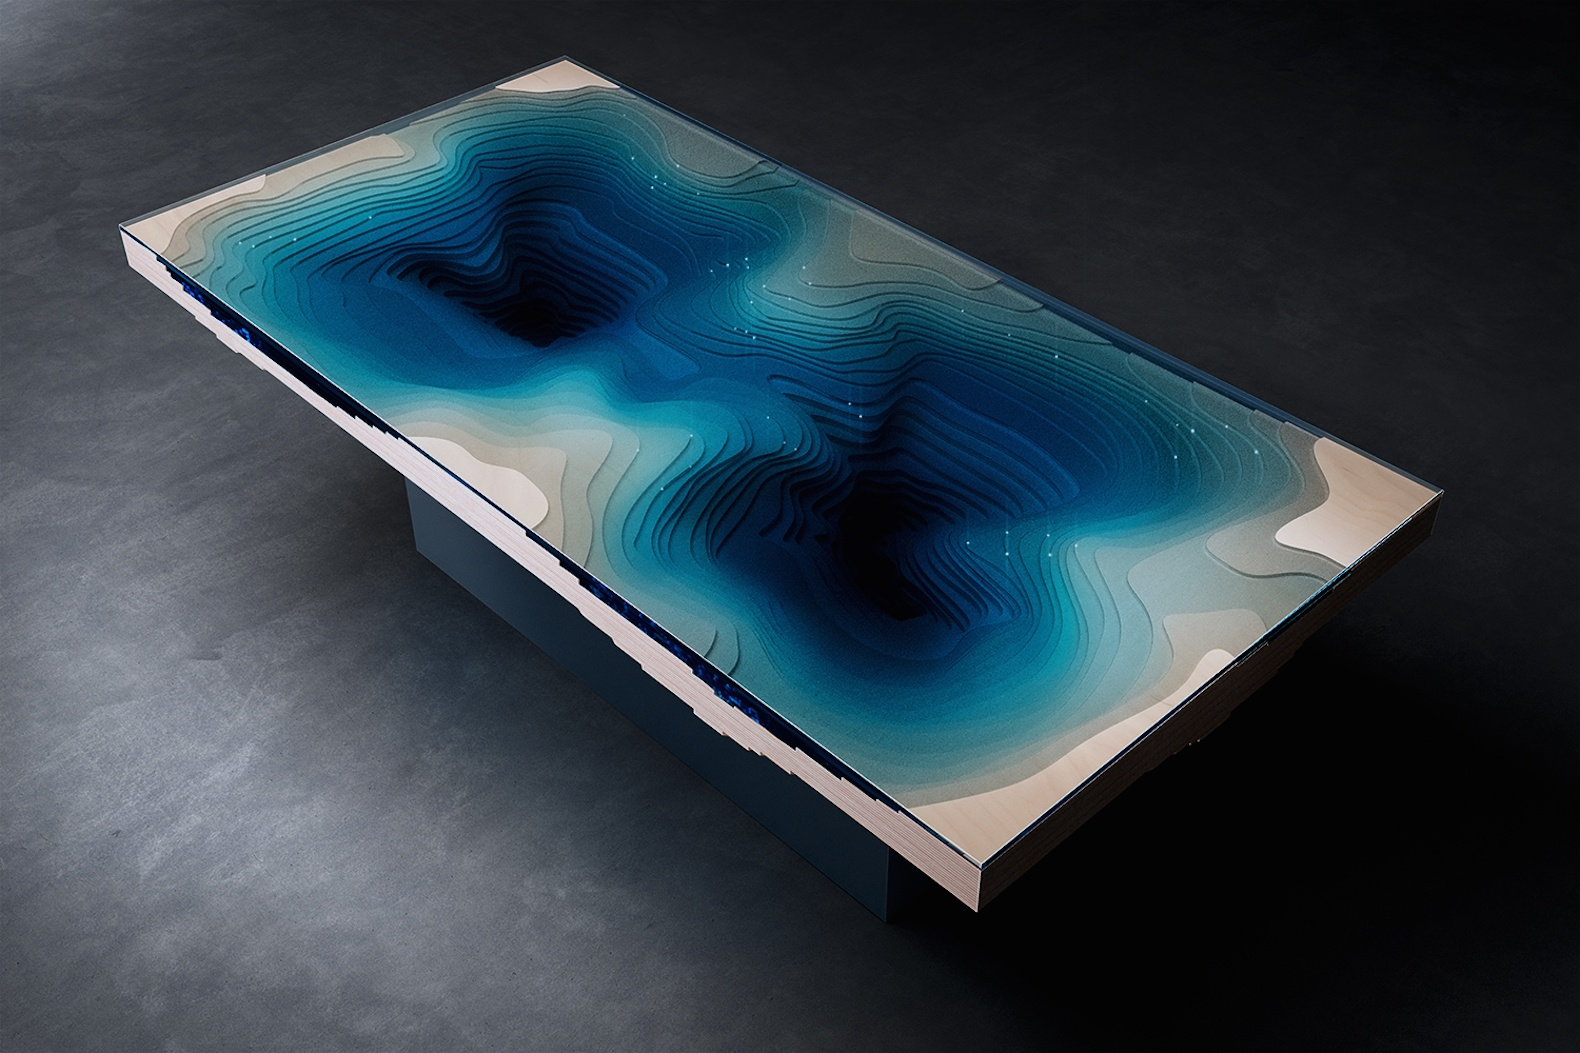 abyss-dining-table-by-duffy-london-1